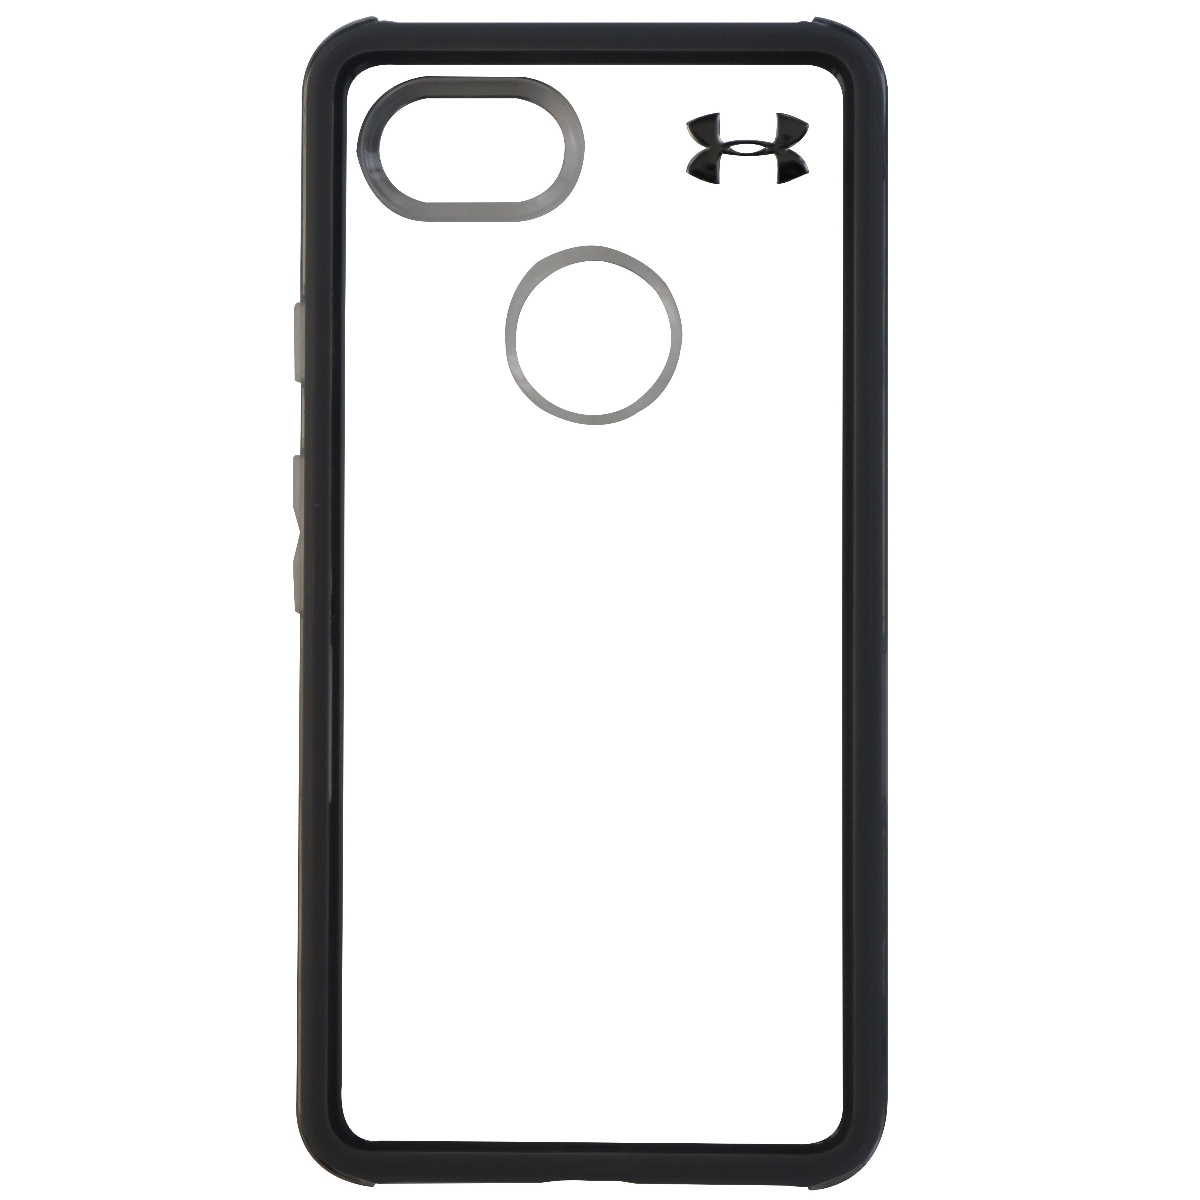 Under Armour Verge Series Hybrid Hard Case for Google Pixel 2 XL - Clear/Gray